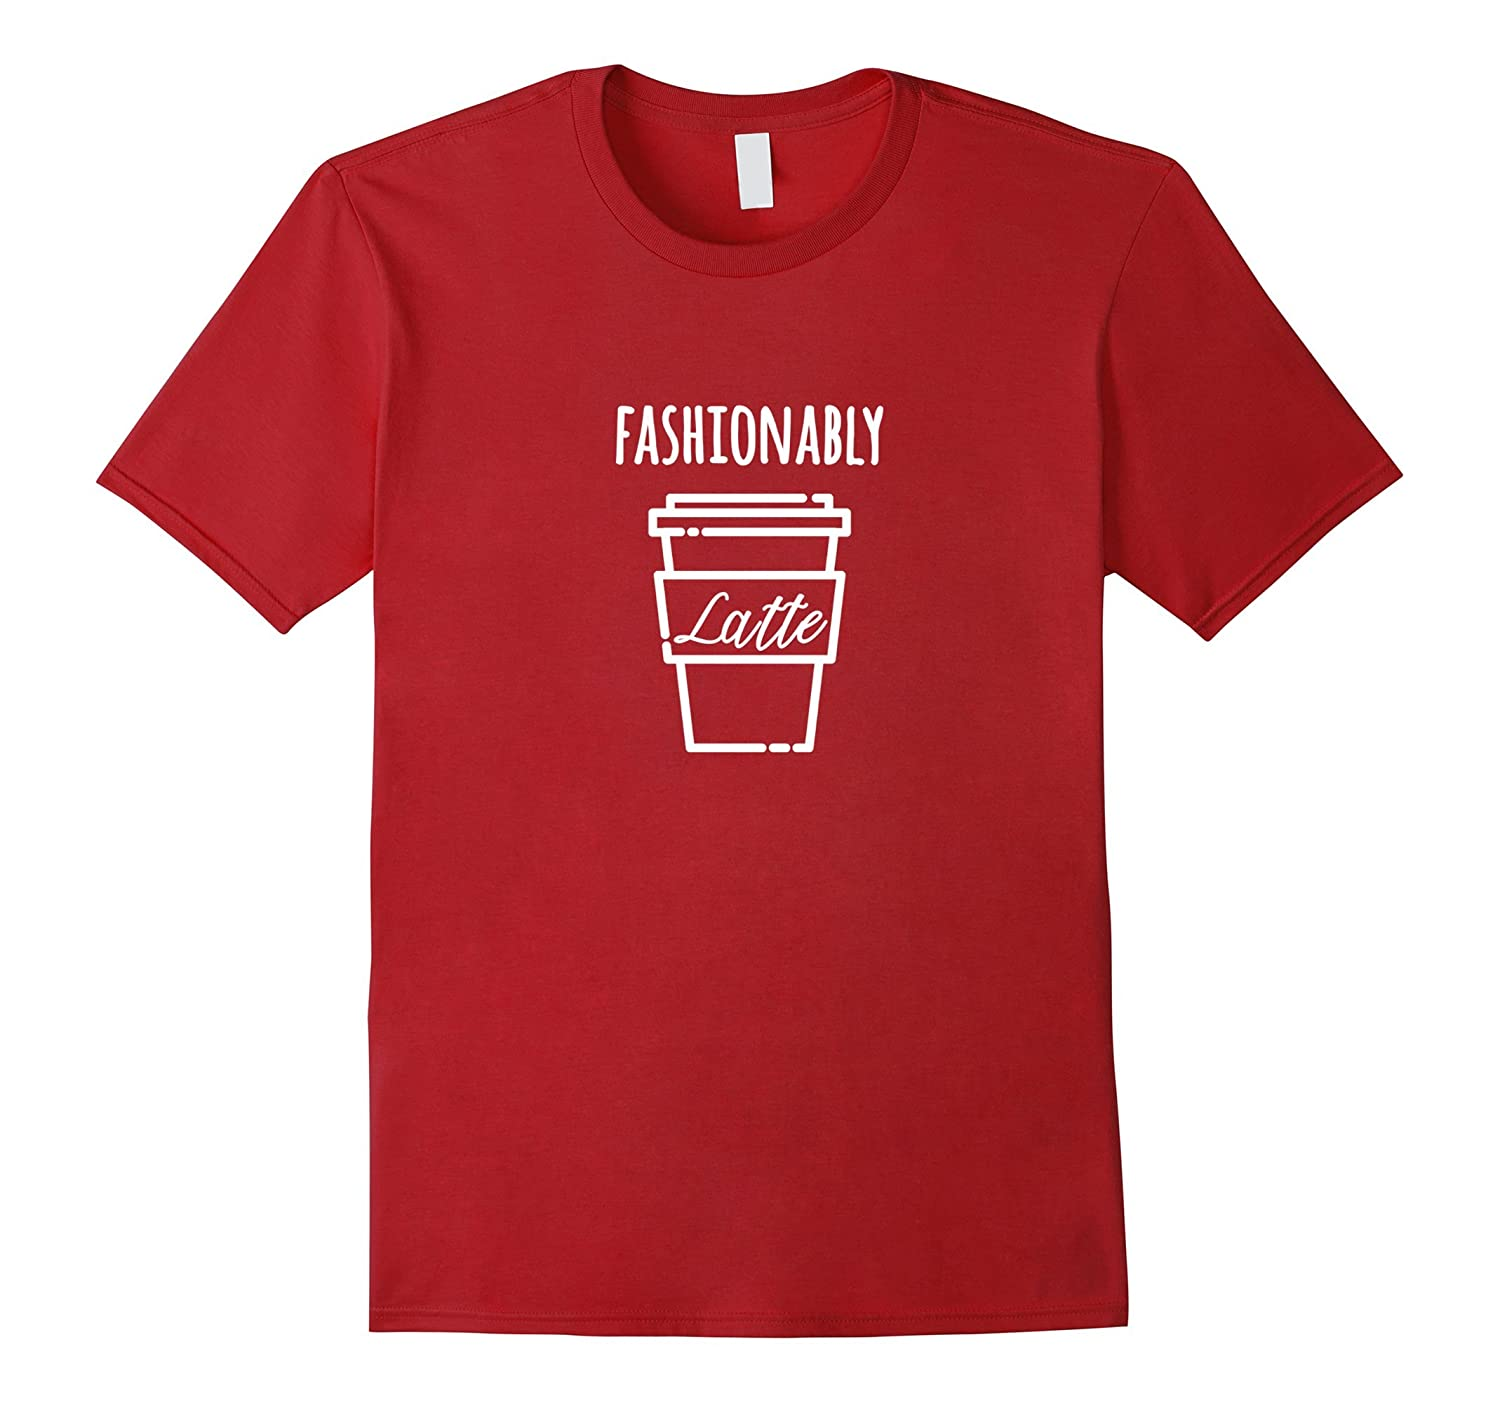 Fashionably Latte late Shirt For fashion and coffee fans-TH